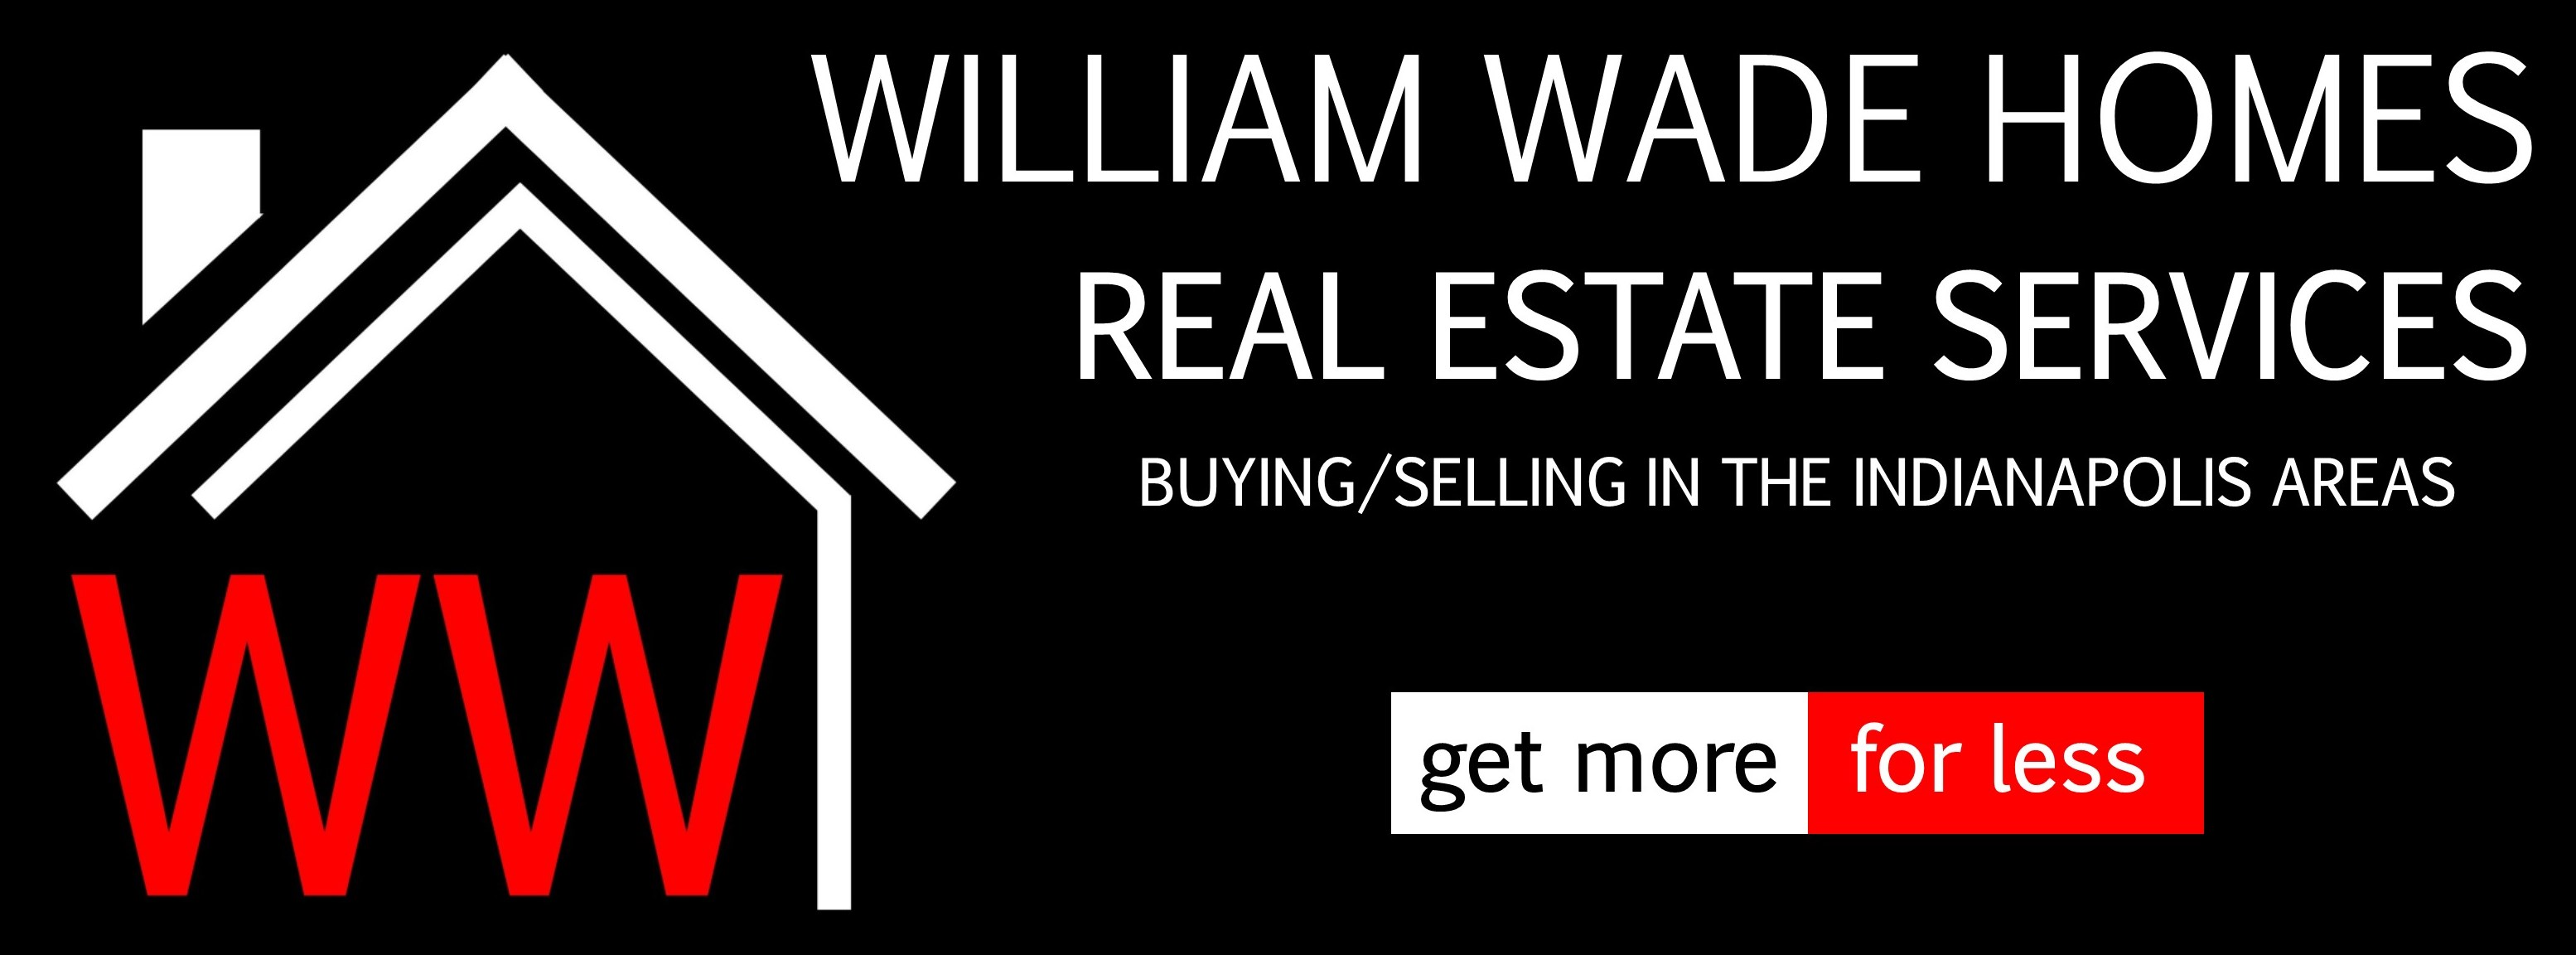 William Wade Homes Real Estate Services